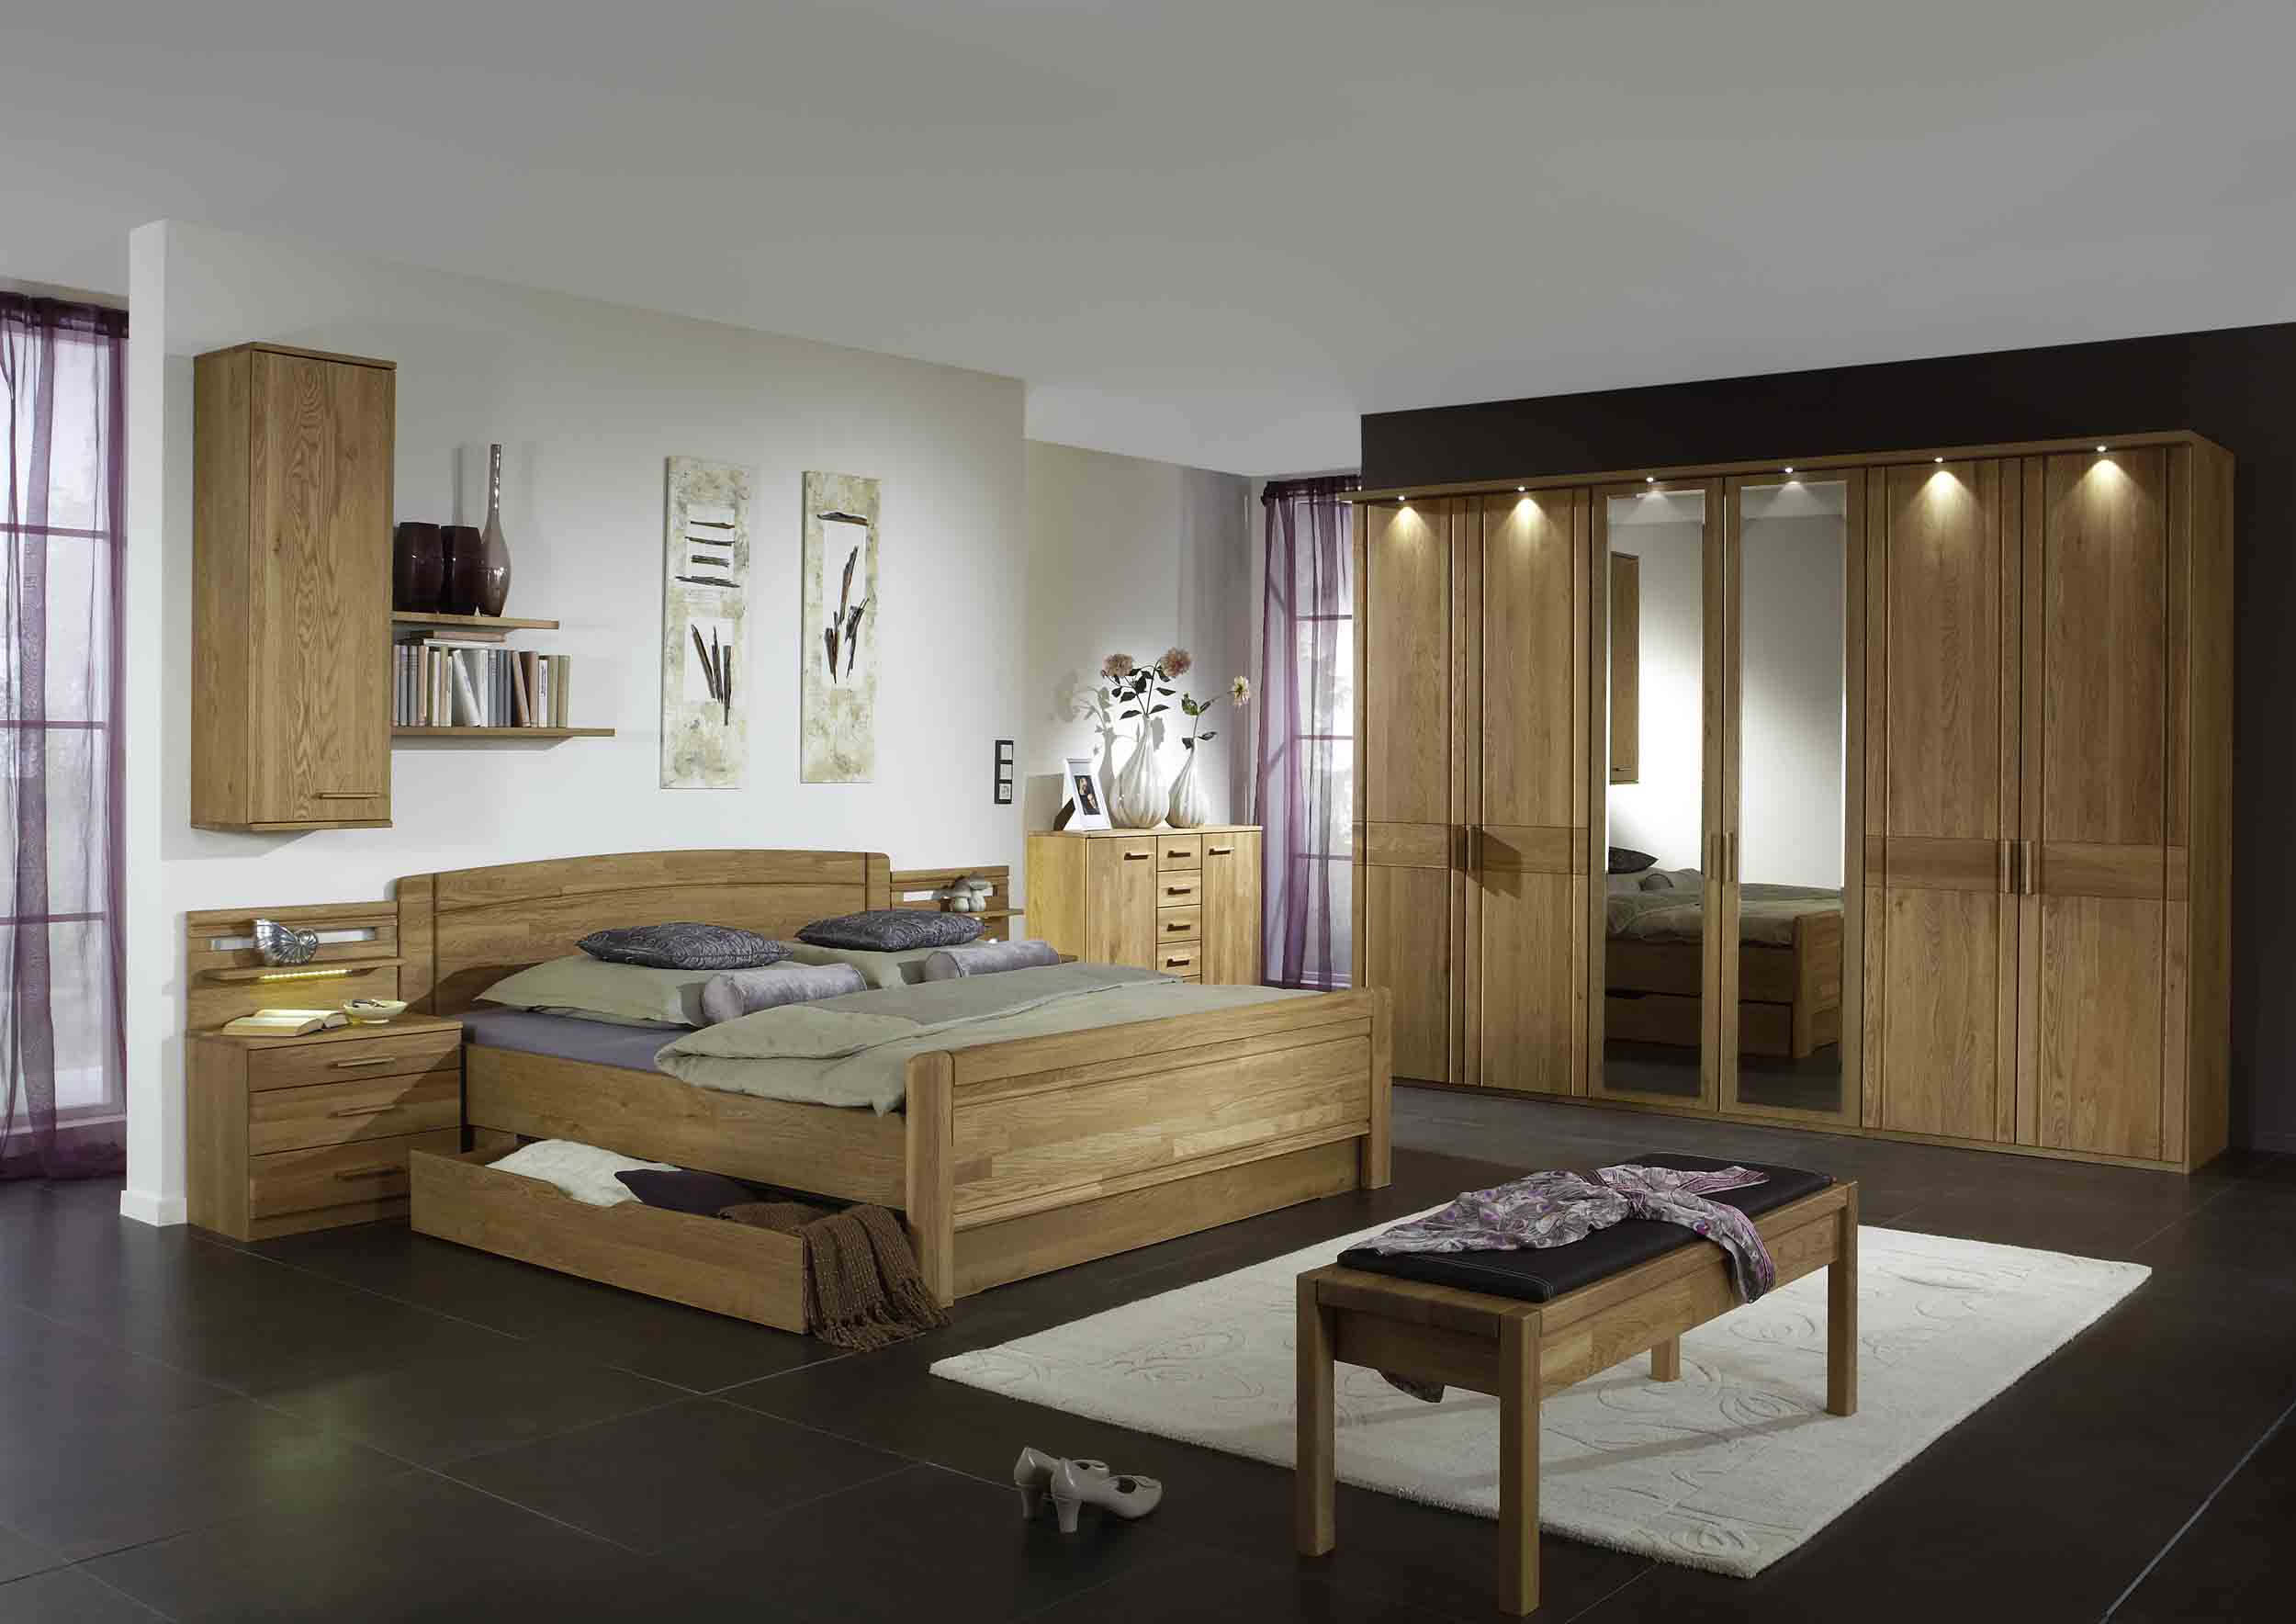 schlafzimmer wiemann m nster g nstig online kaufen massiva m. Black Bedroom Furniture Sets. Home Design Ideas